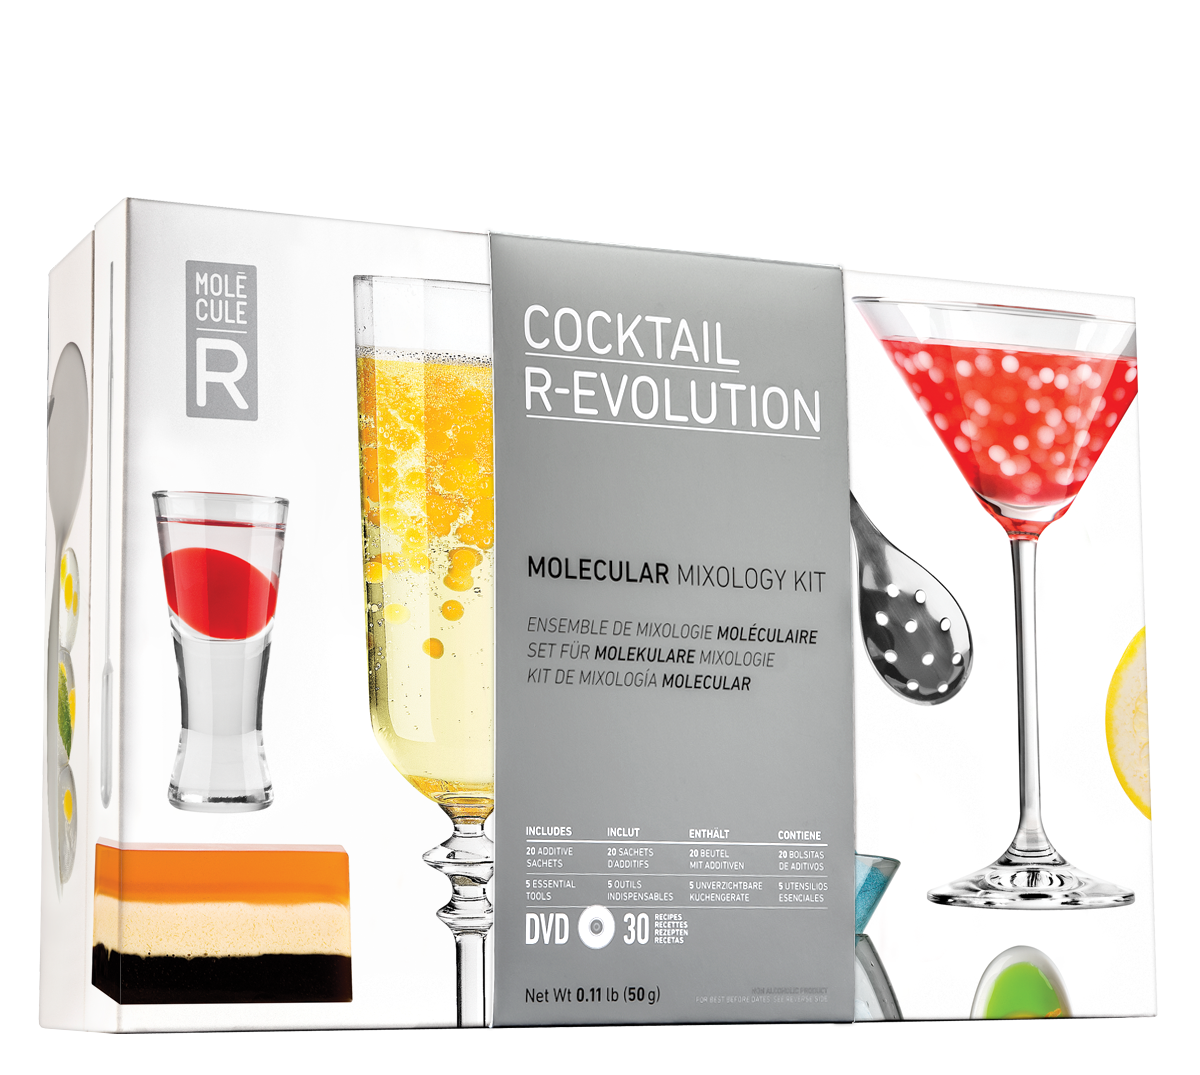 COCKTAIL R-EVOLUTION Molecular Mixology Kit